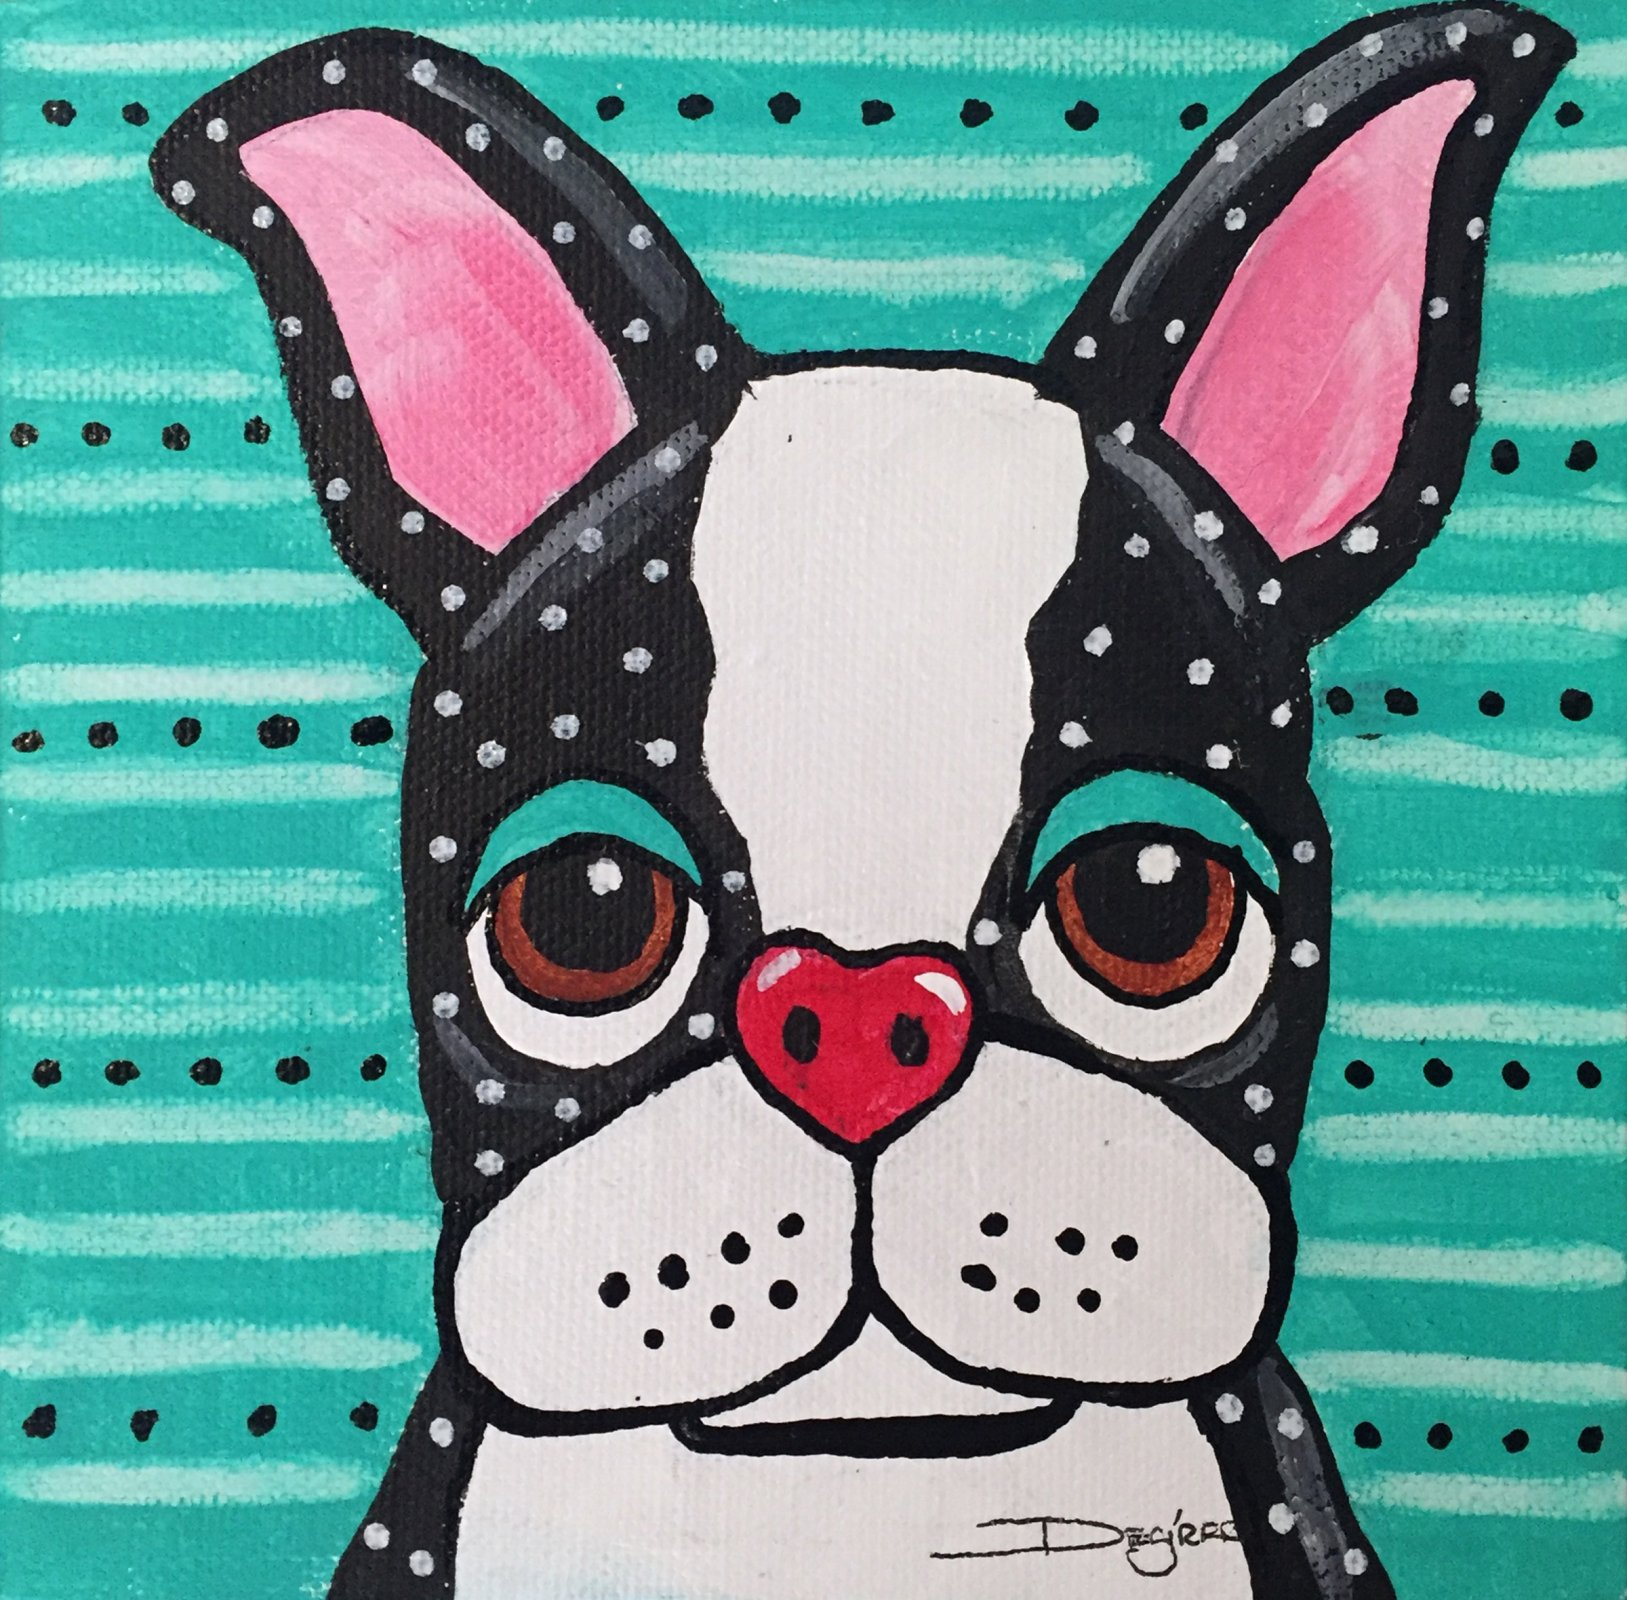 Whimsical Boston Terrier Acrylic Painting 6x6 originals! (AW-01)